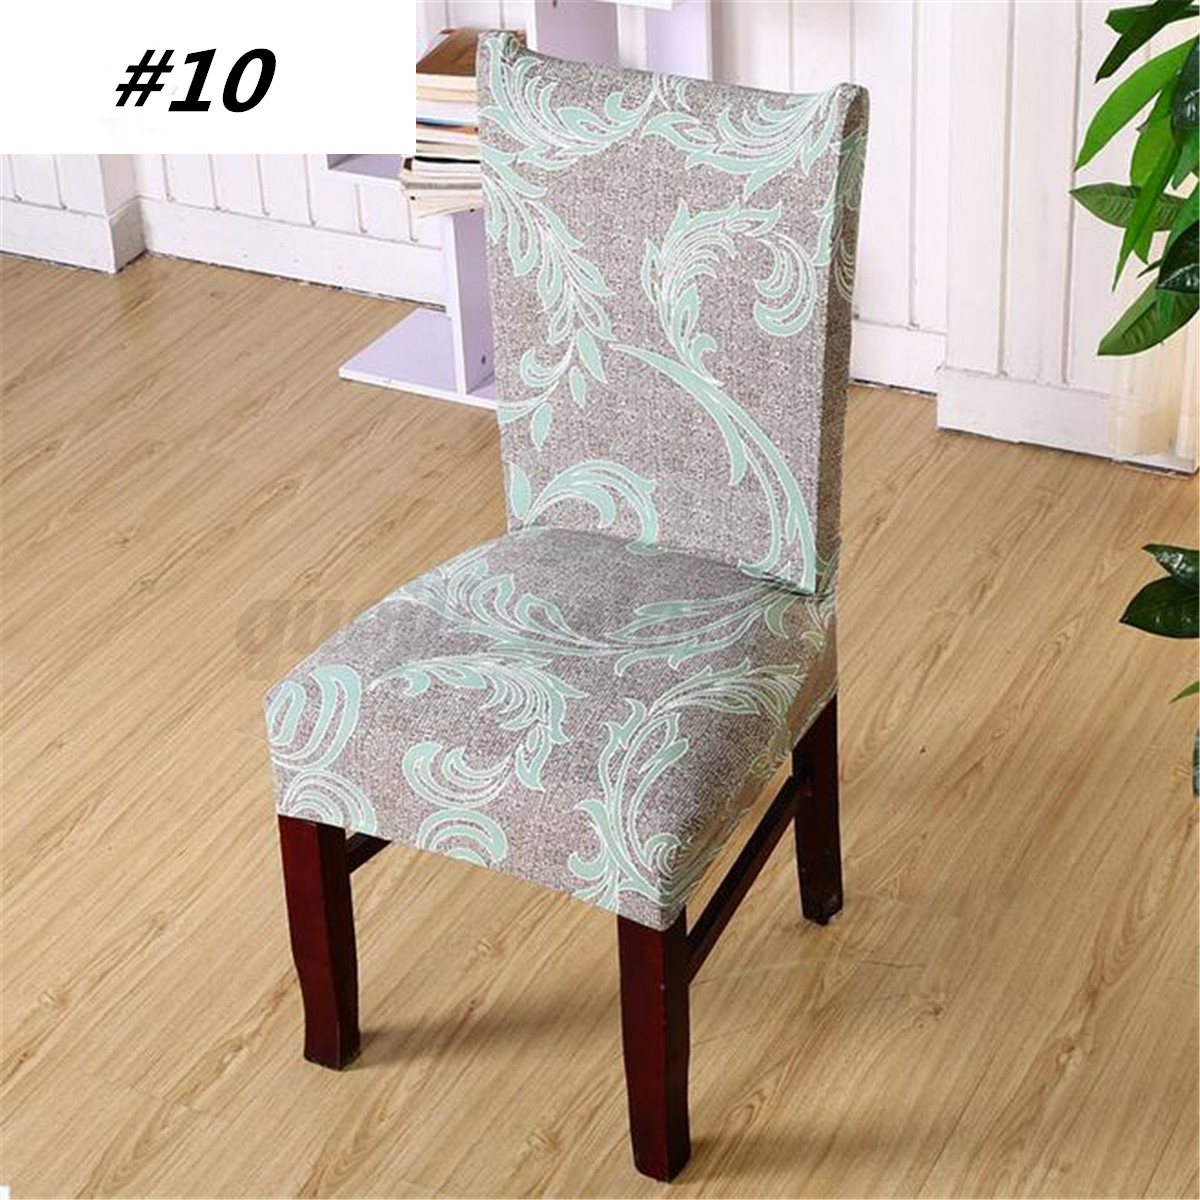 chair covers set of 6 leather desk with no wheels spandex stretch cover seat polyester washable